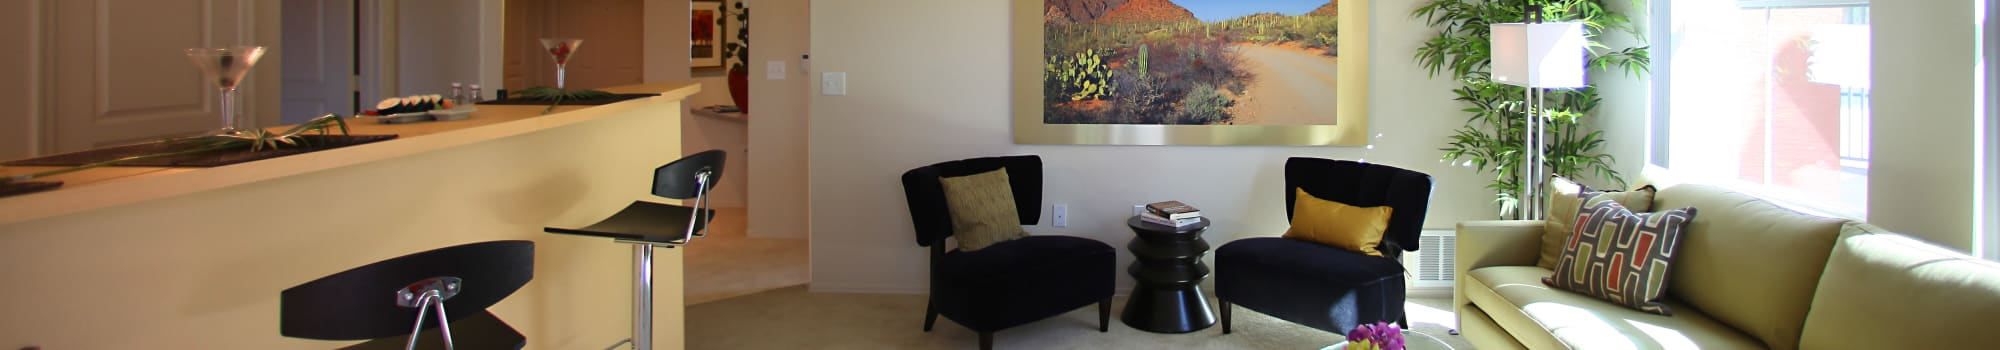 Amenities at Sage Luxury Apartment Homes in Phoenix, Arizona